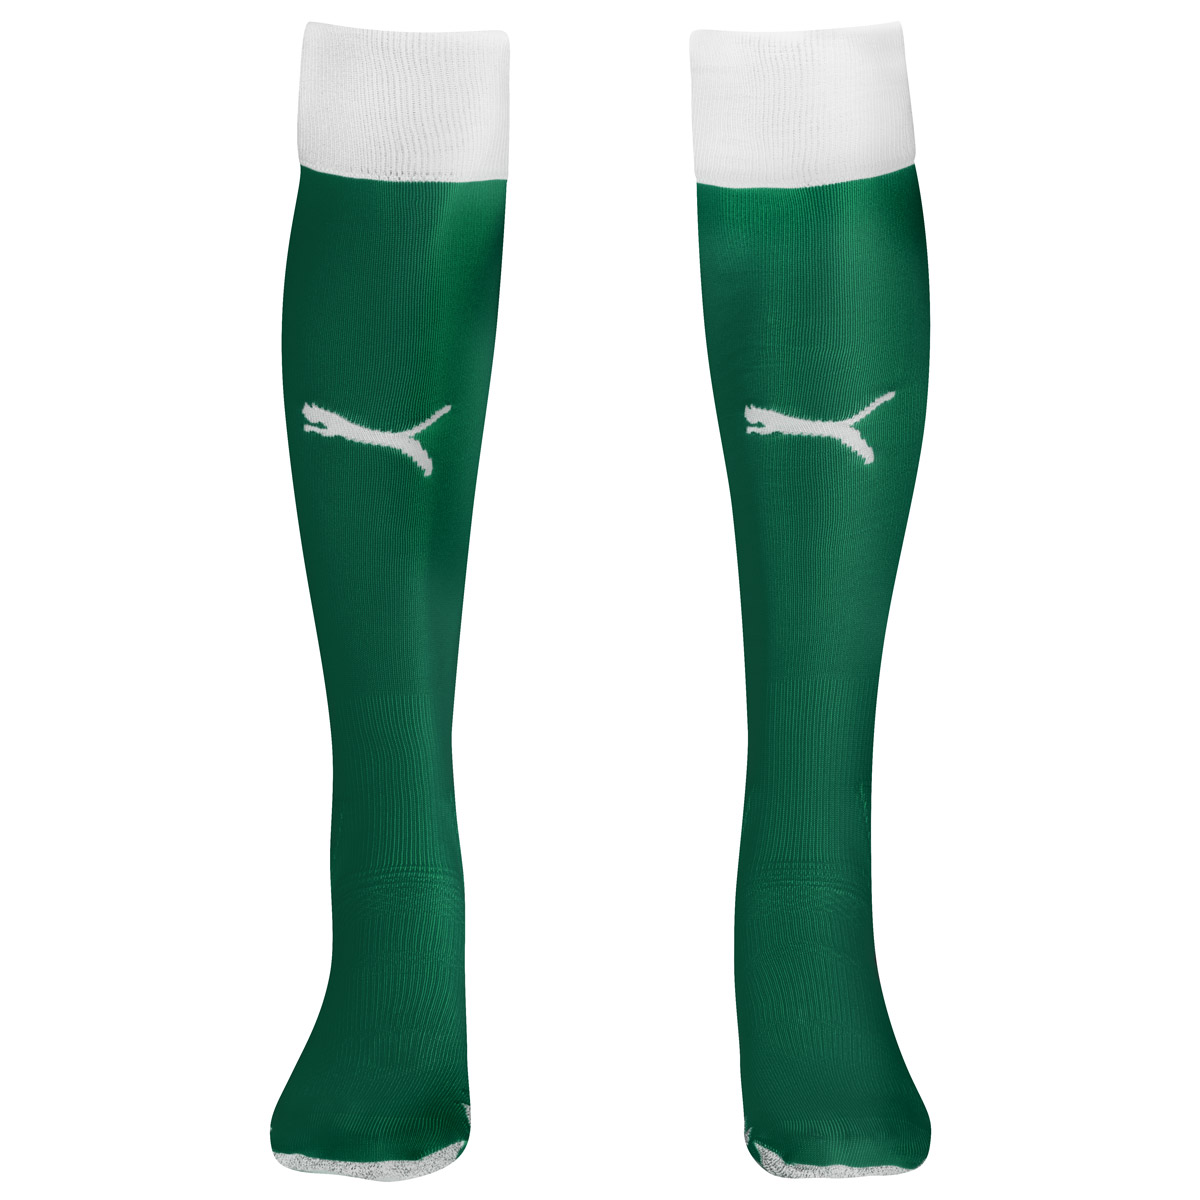 Puma Finale Socks-Green/White